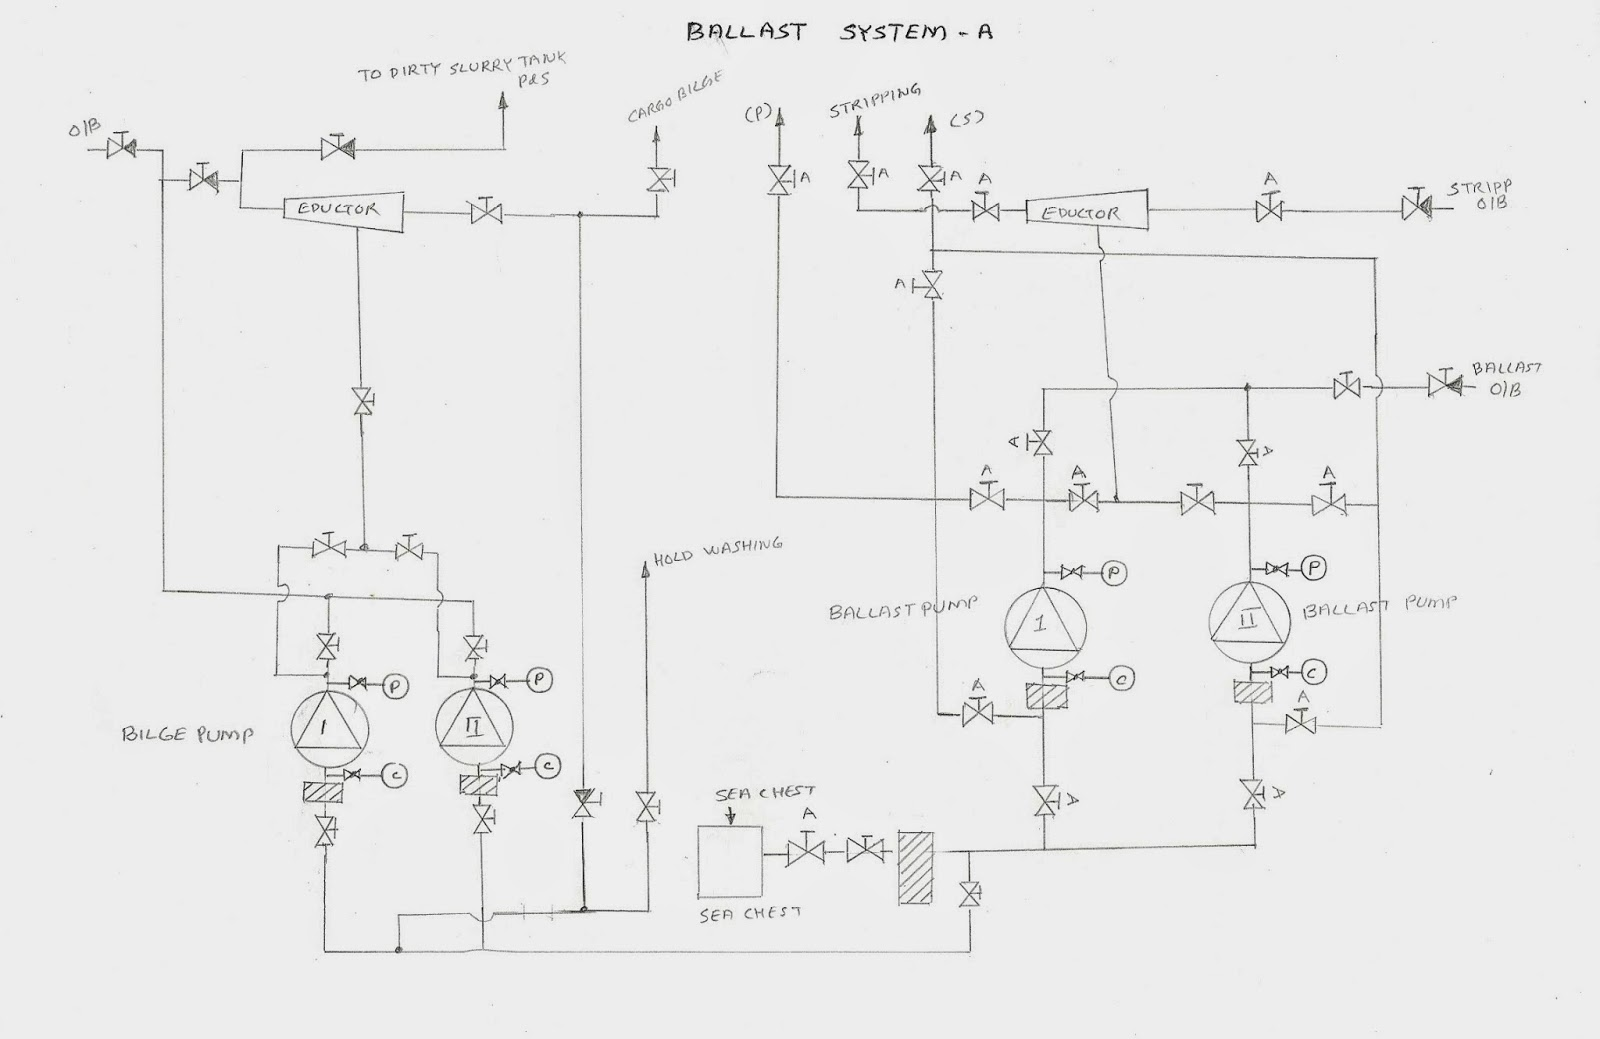 line diagram of blast system